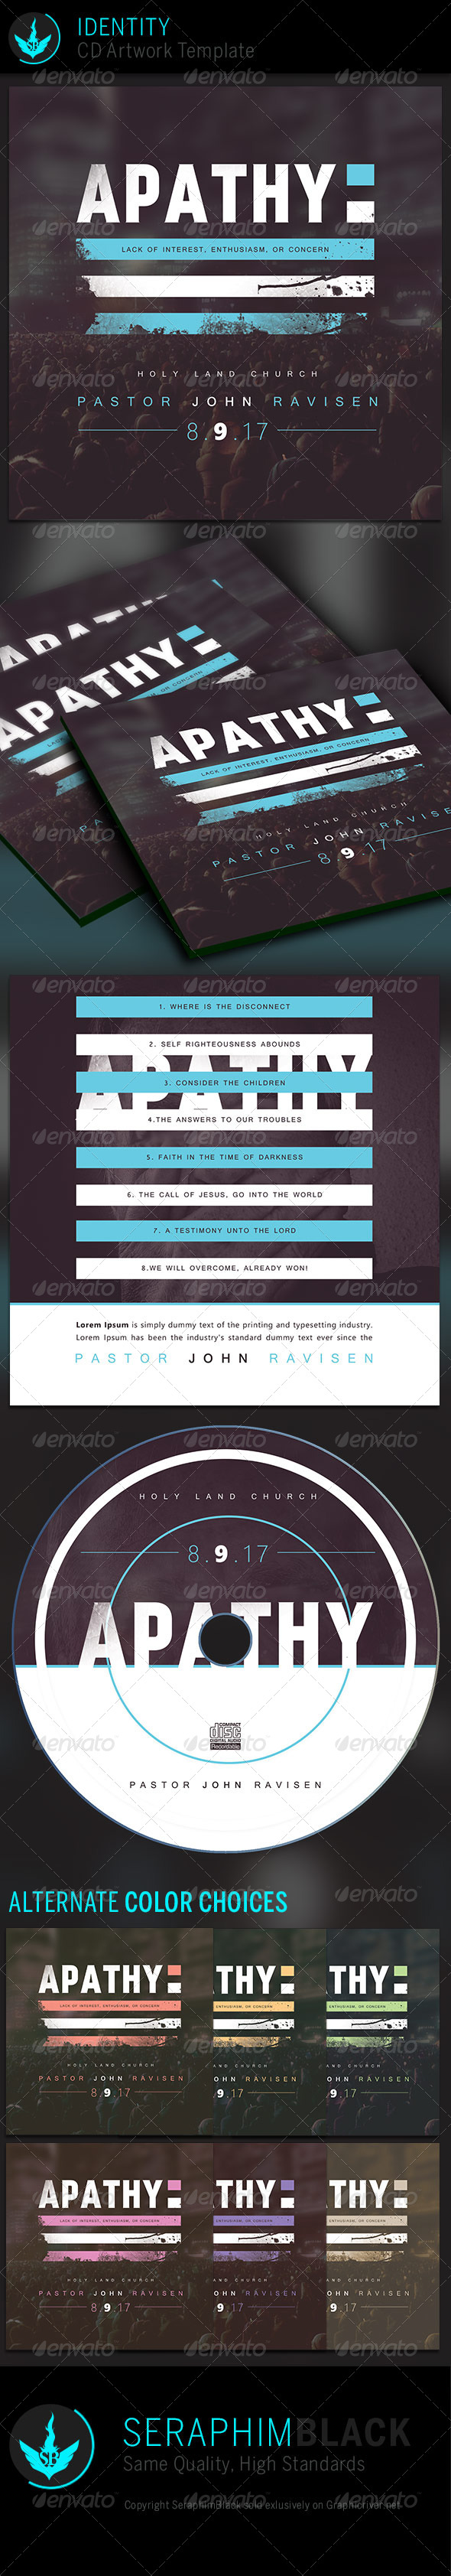 Apathy: CD Artwork Template - CD & DVD Artwork Print Templates